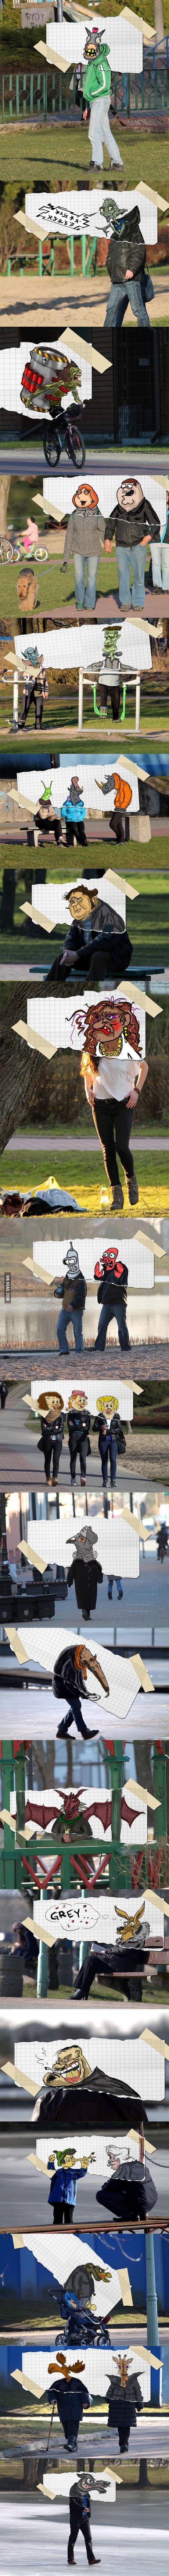 A guy in Suwalki, Poland combines photos with his awesome drawings